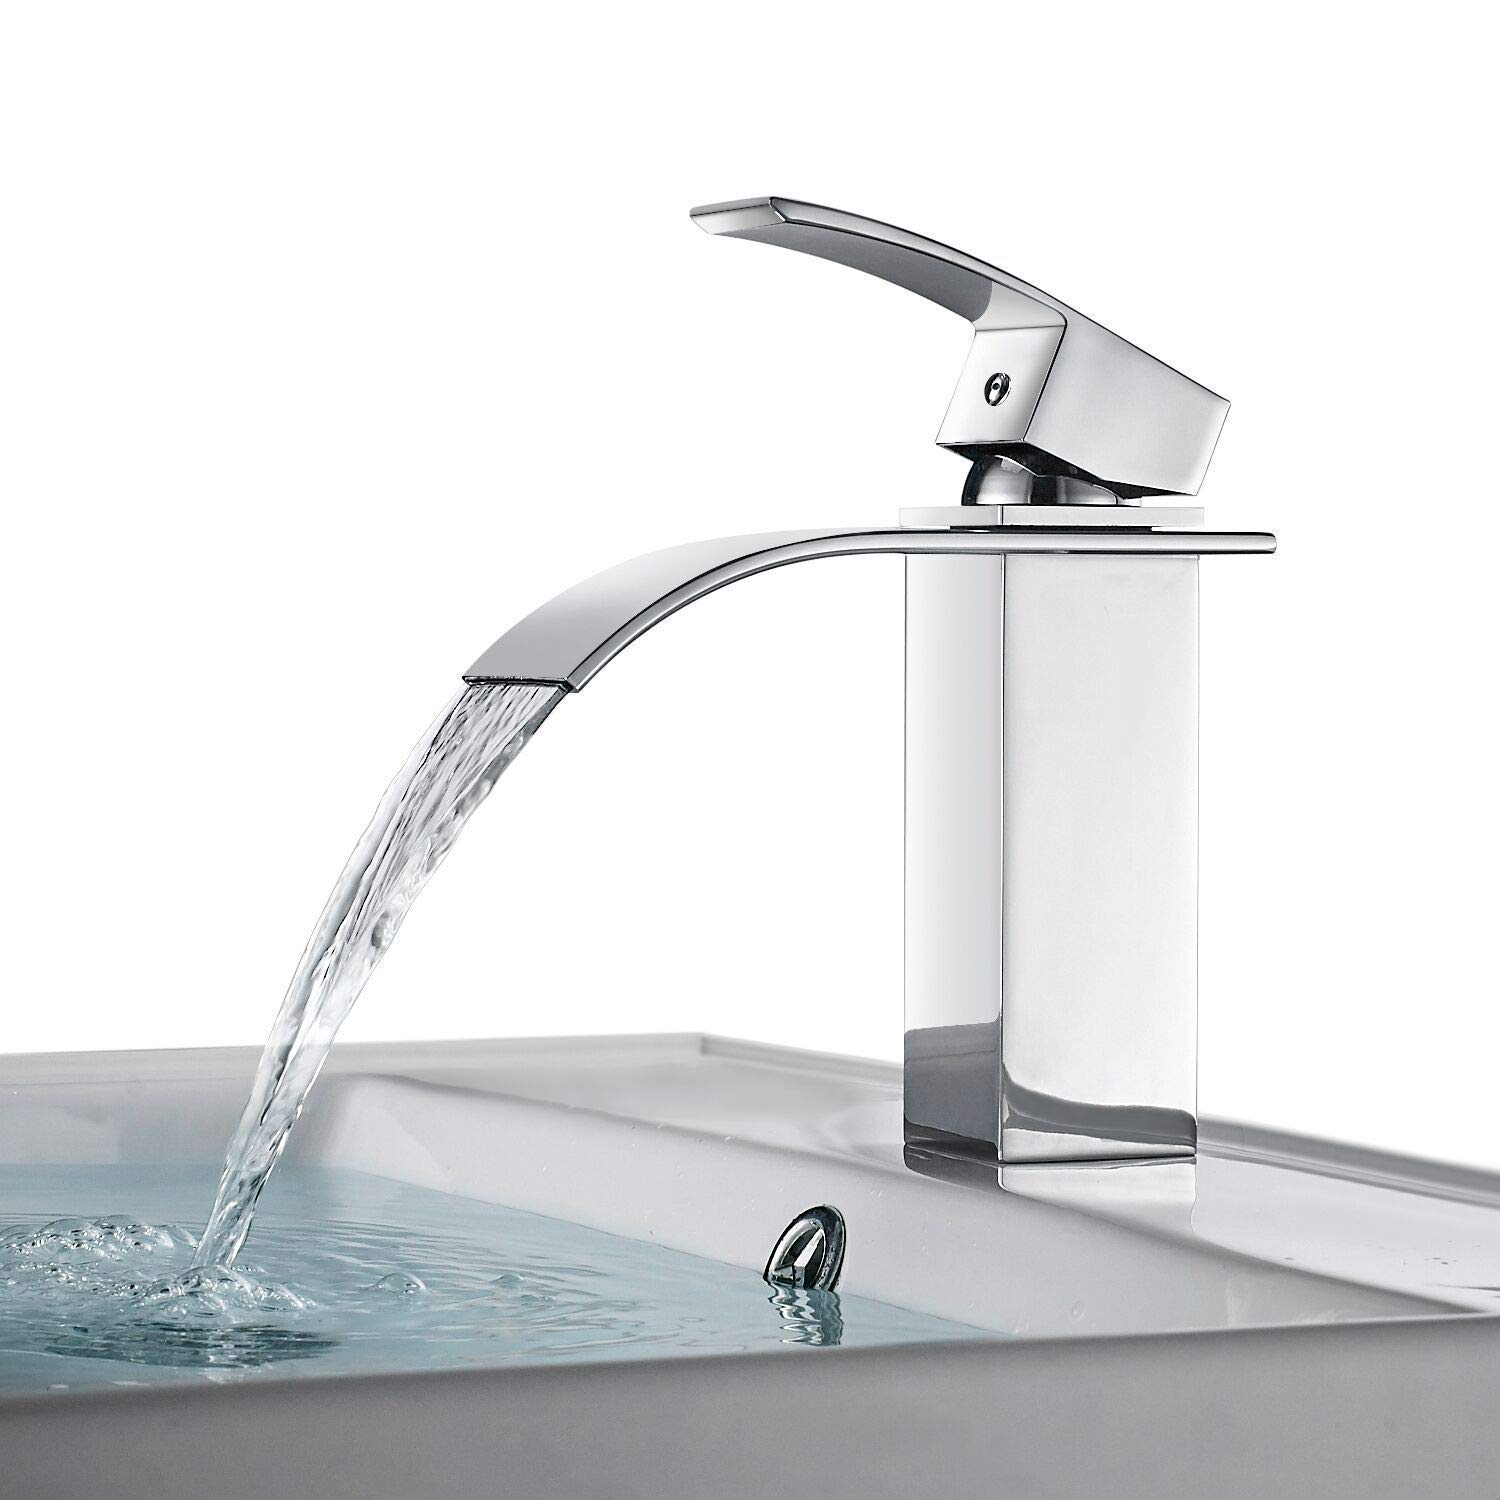 FChome Bathroom Sink Pop-up Drain with Overflow for Vessel Vanity Sink Chrome